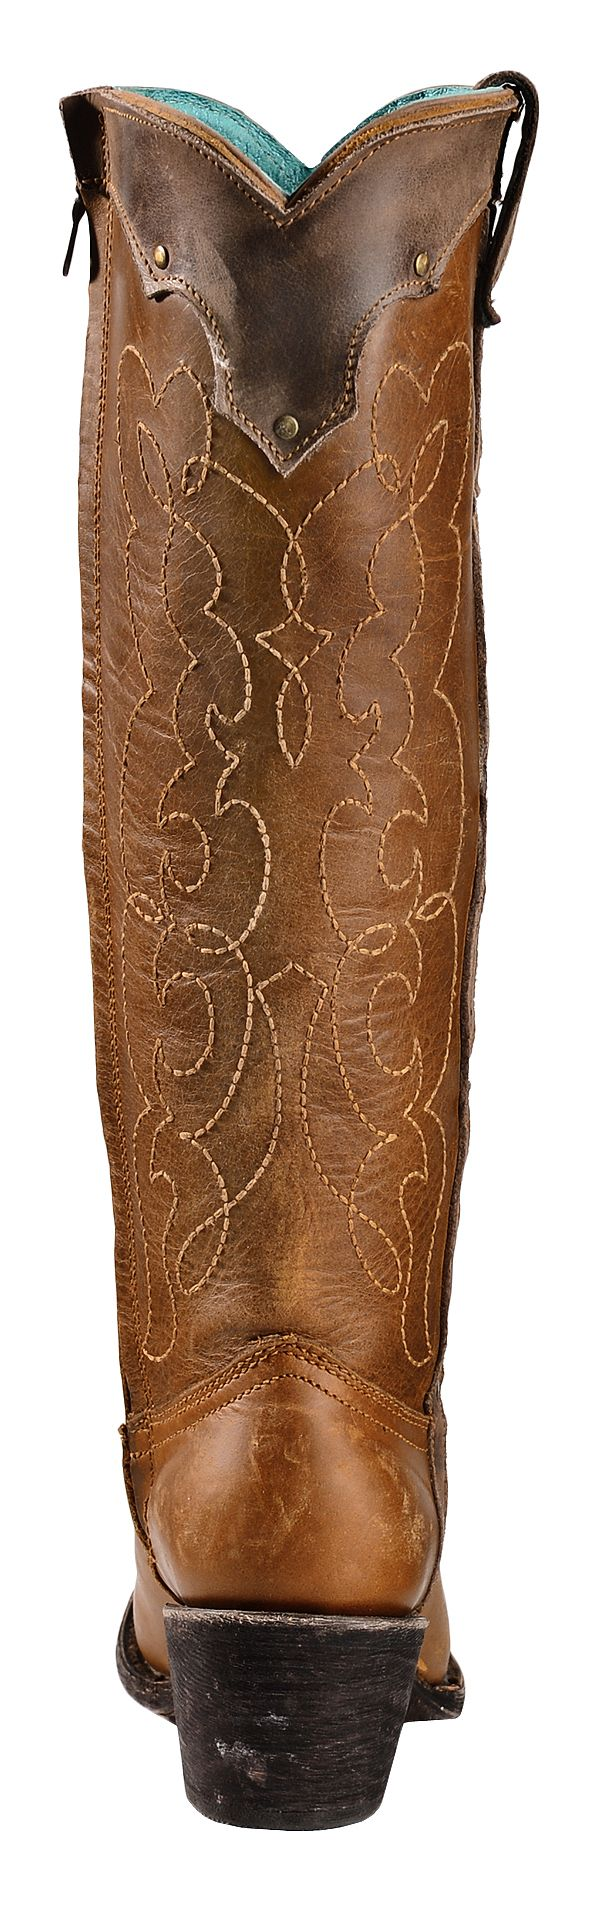 Corral Kats Natural Westport Cowgirl Boots - Round Toe - Country ...